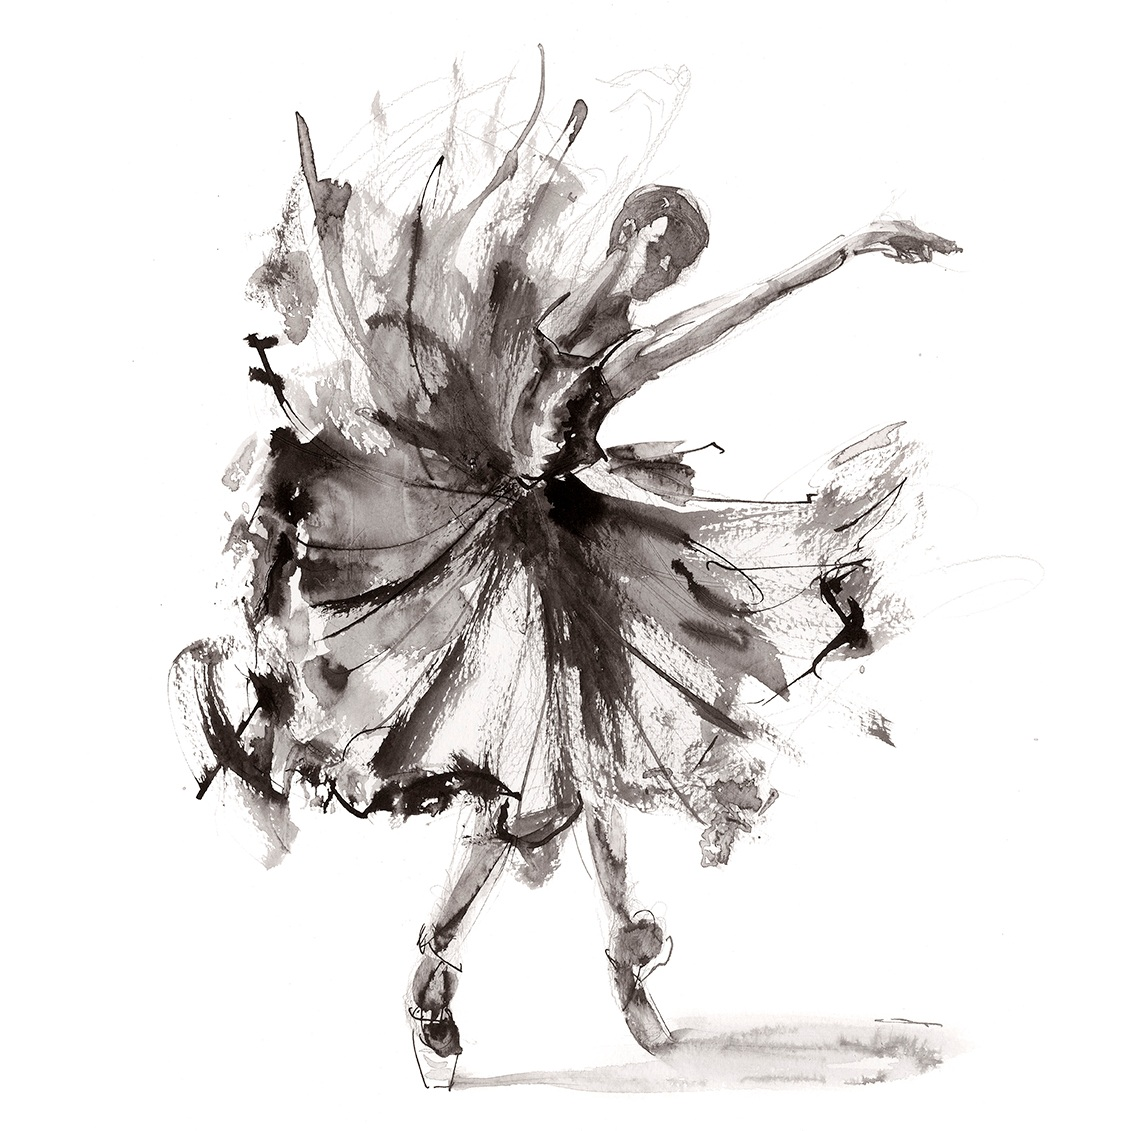 'Release'.  Fine Art Print by Artist, Dana Trijbetz.  Ballet Dancers Collection.  Original Ink Painting made as a Giclée Print on 100% Cotton Paper.  Image 2 of 3.jpg